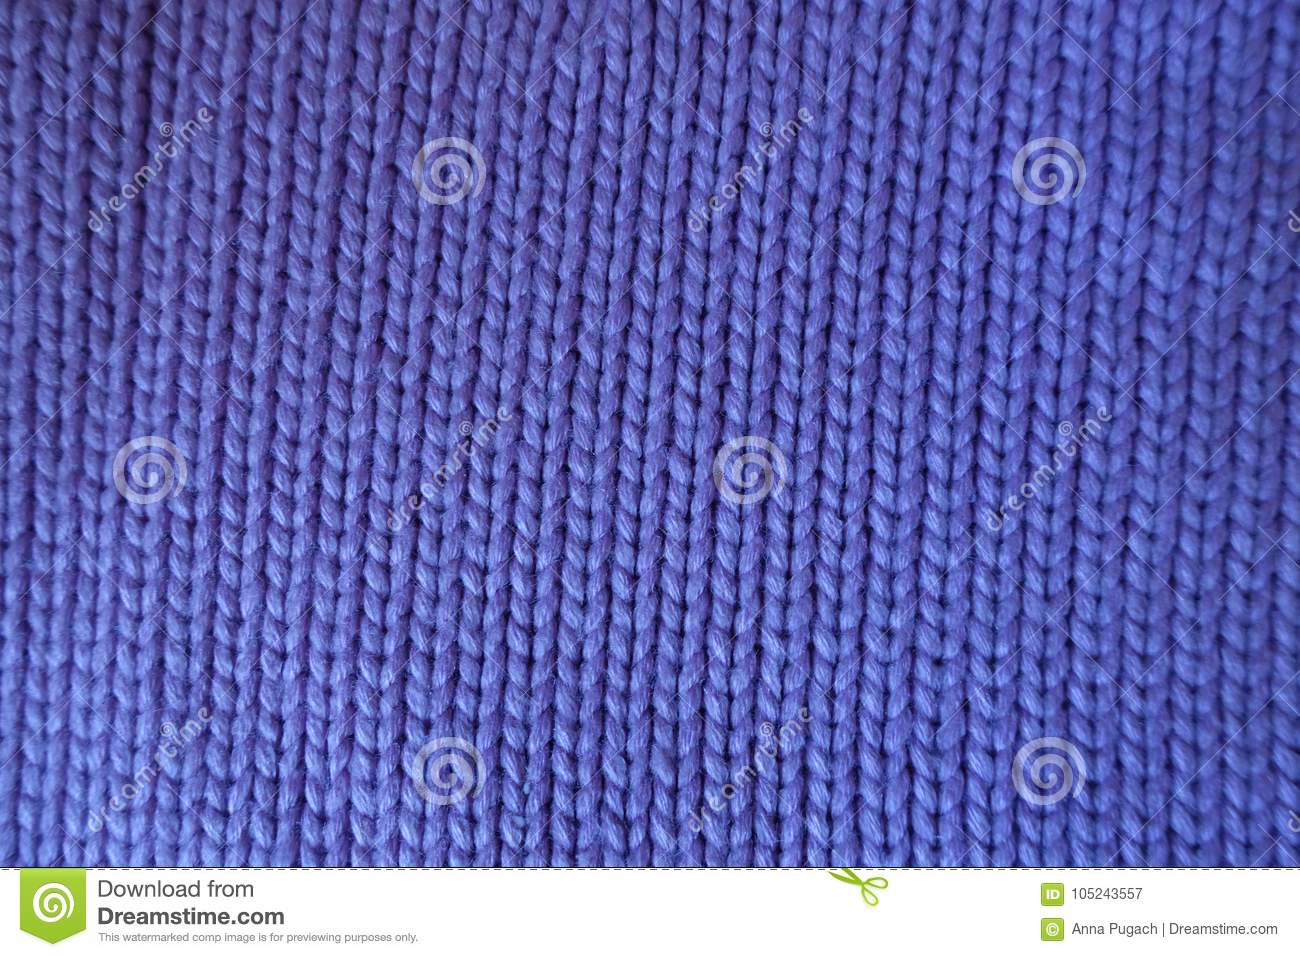 Handmade Violet Plain Knit Stitch Fabric Stock Image Image Of Knit